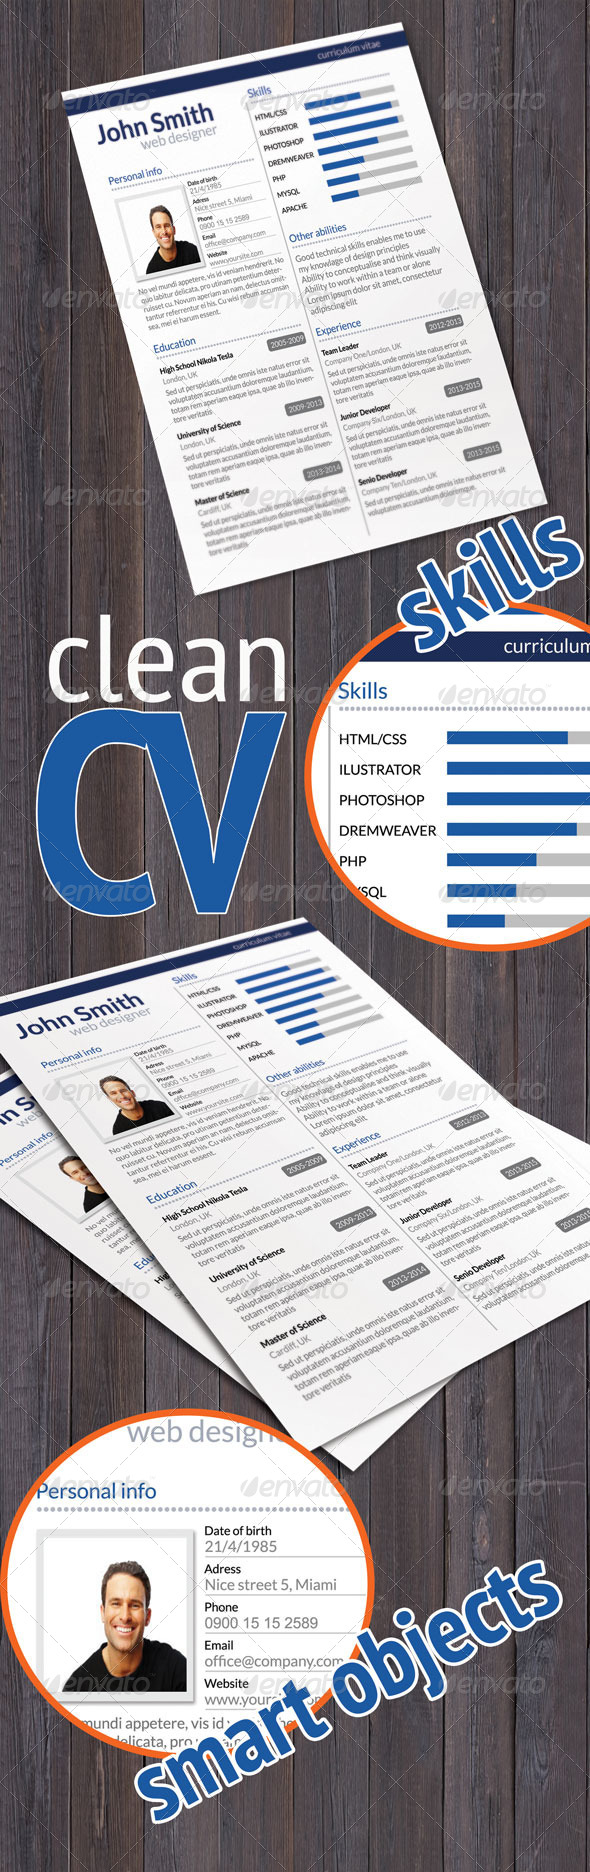 GraphicRiver Clean CV 6331080